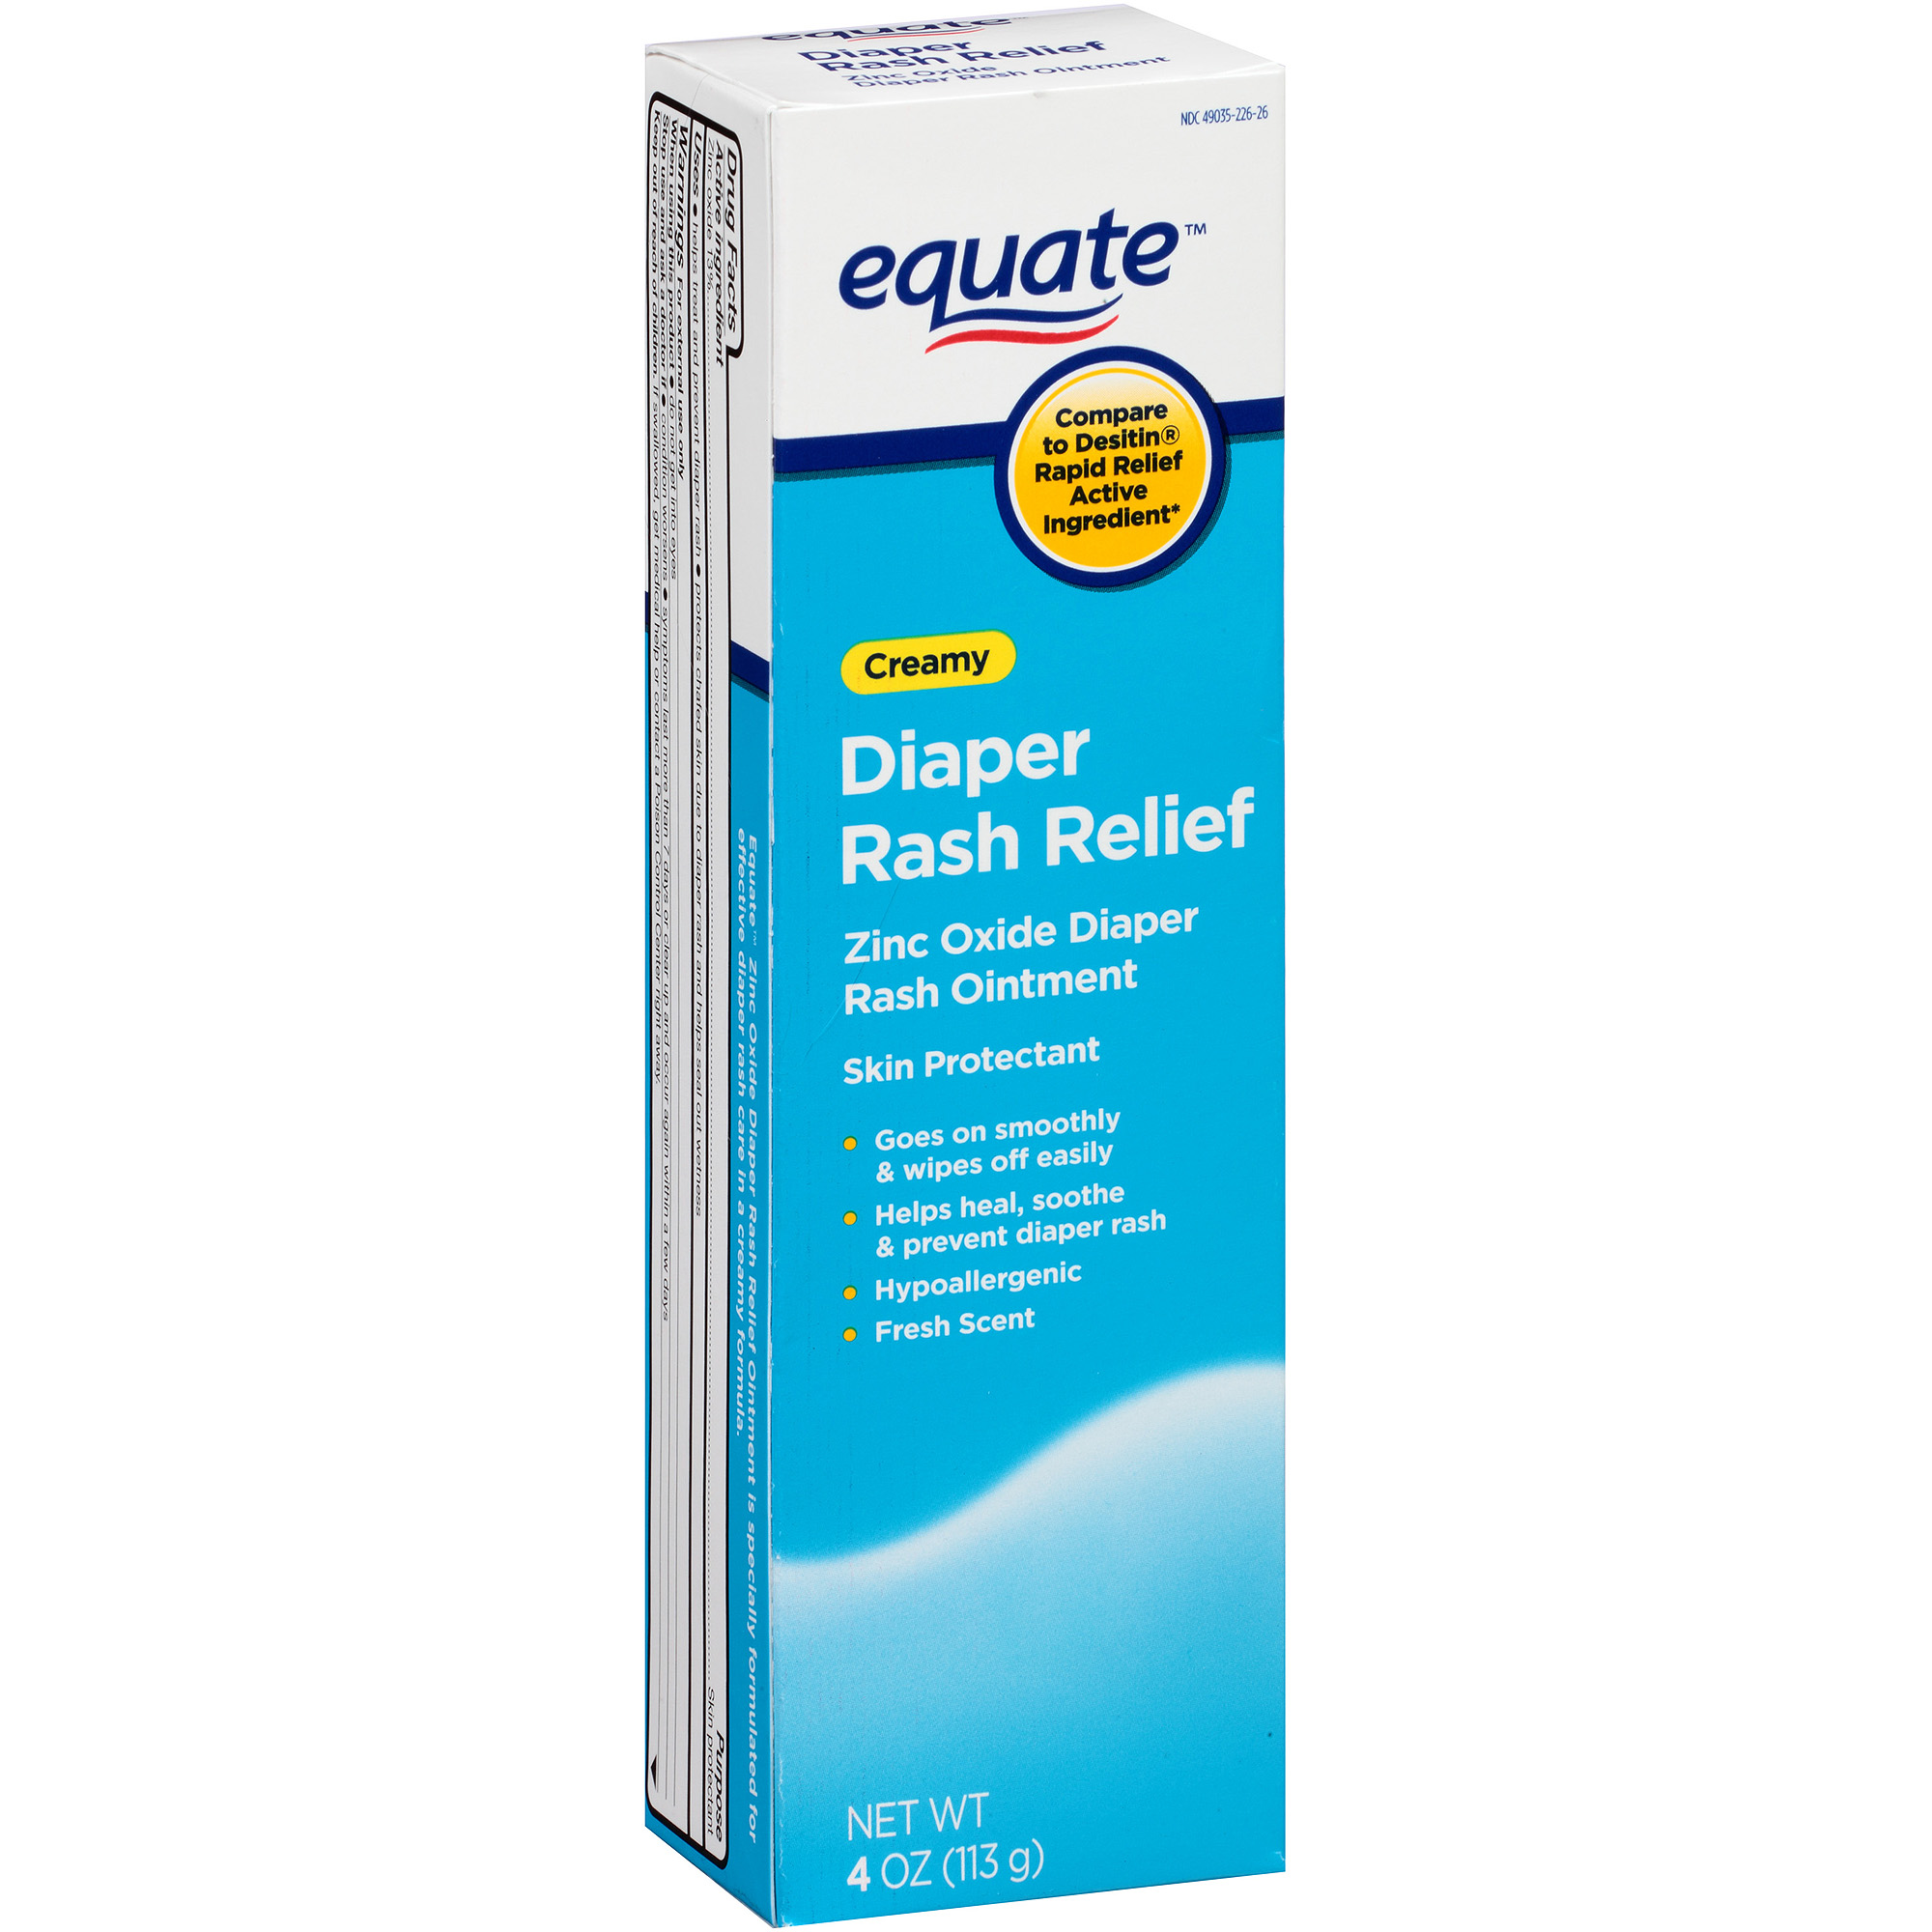 Equate Diaper Rash Cream, 4 oz